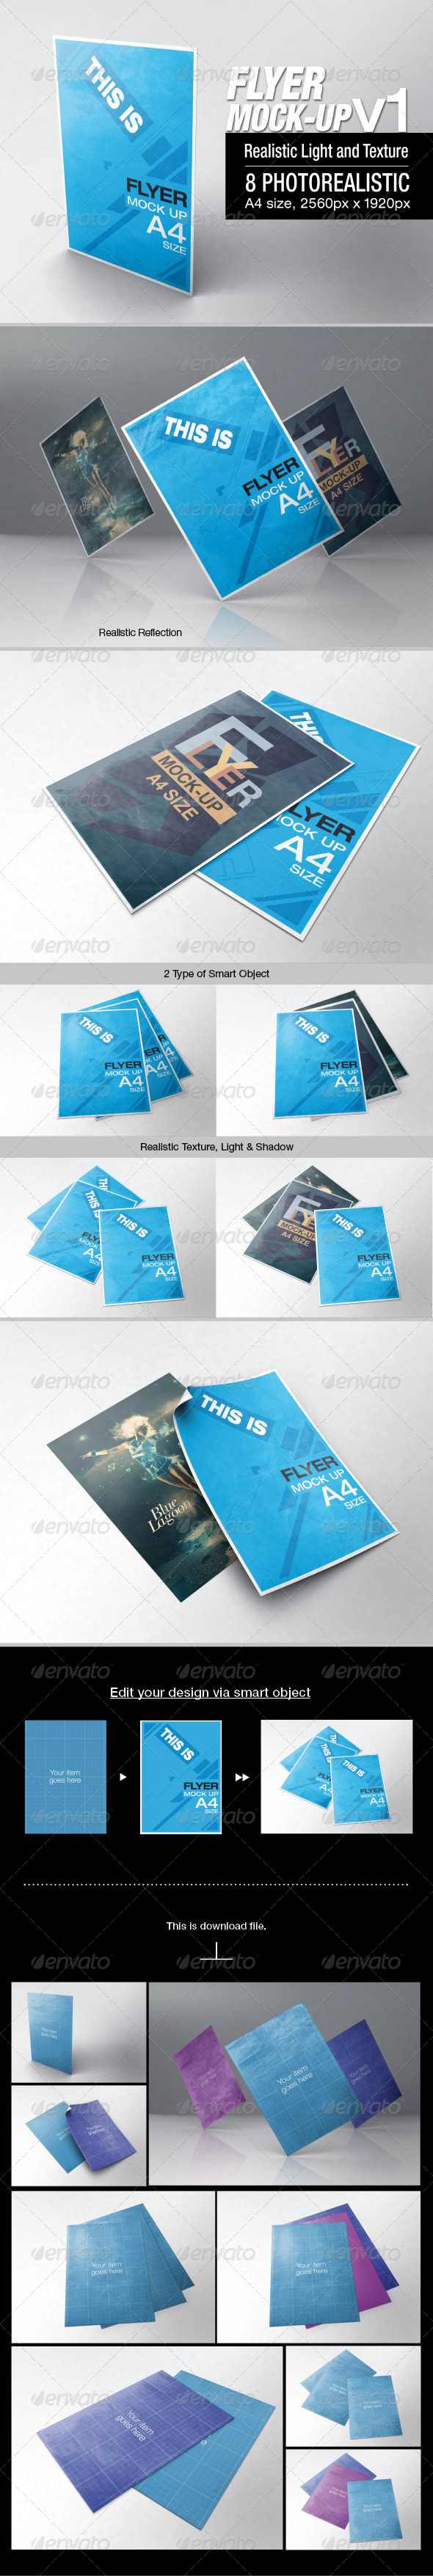 GraphicRiver Flyer Mock-up v1 6645787